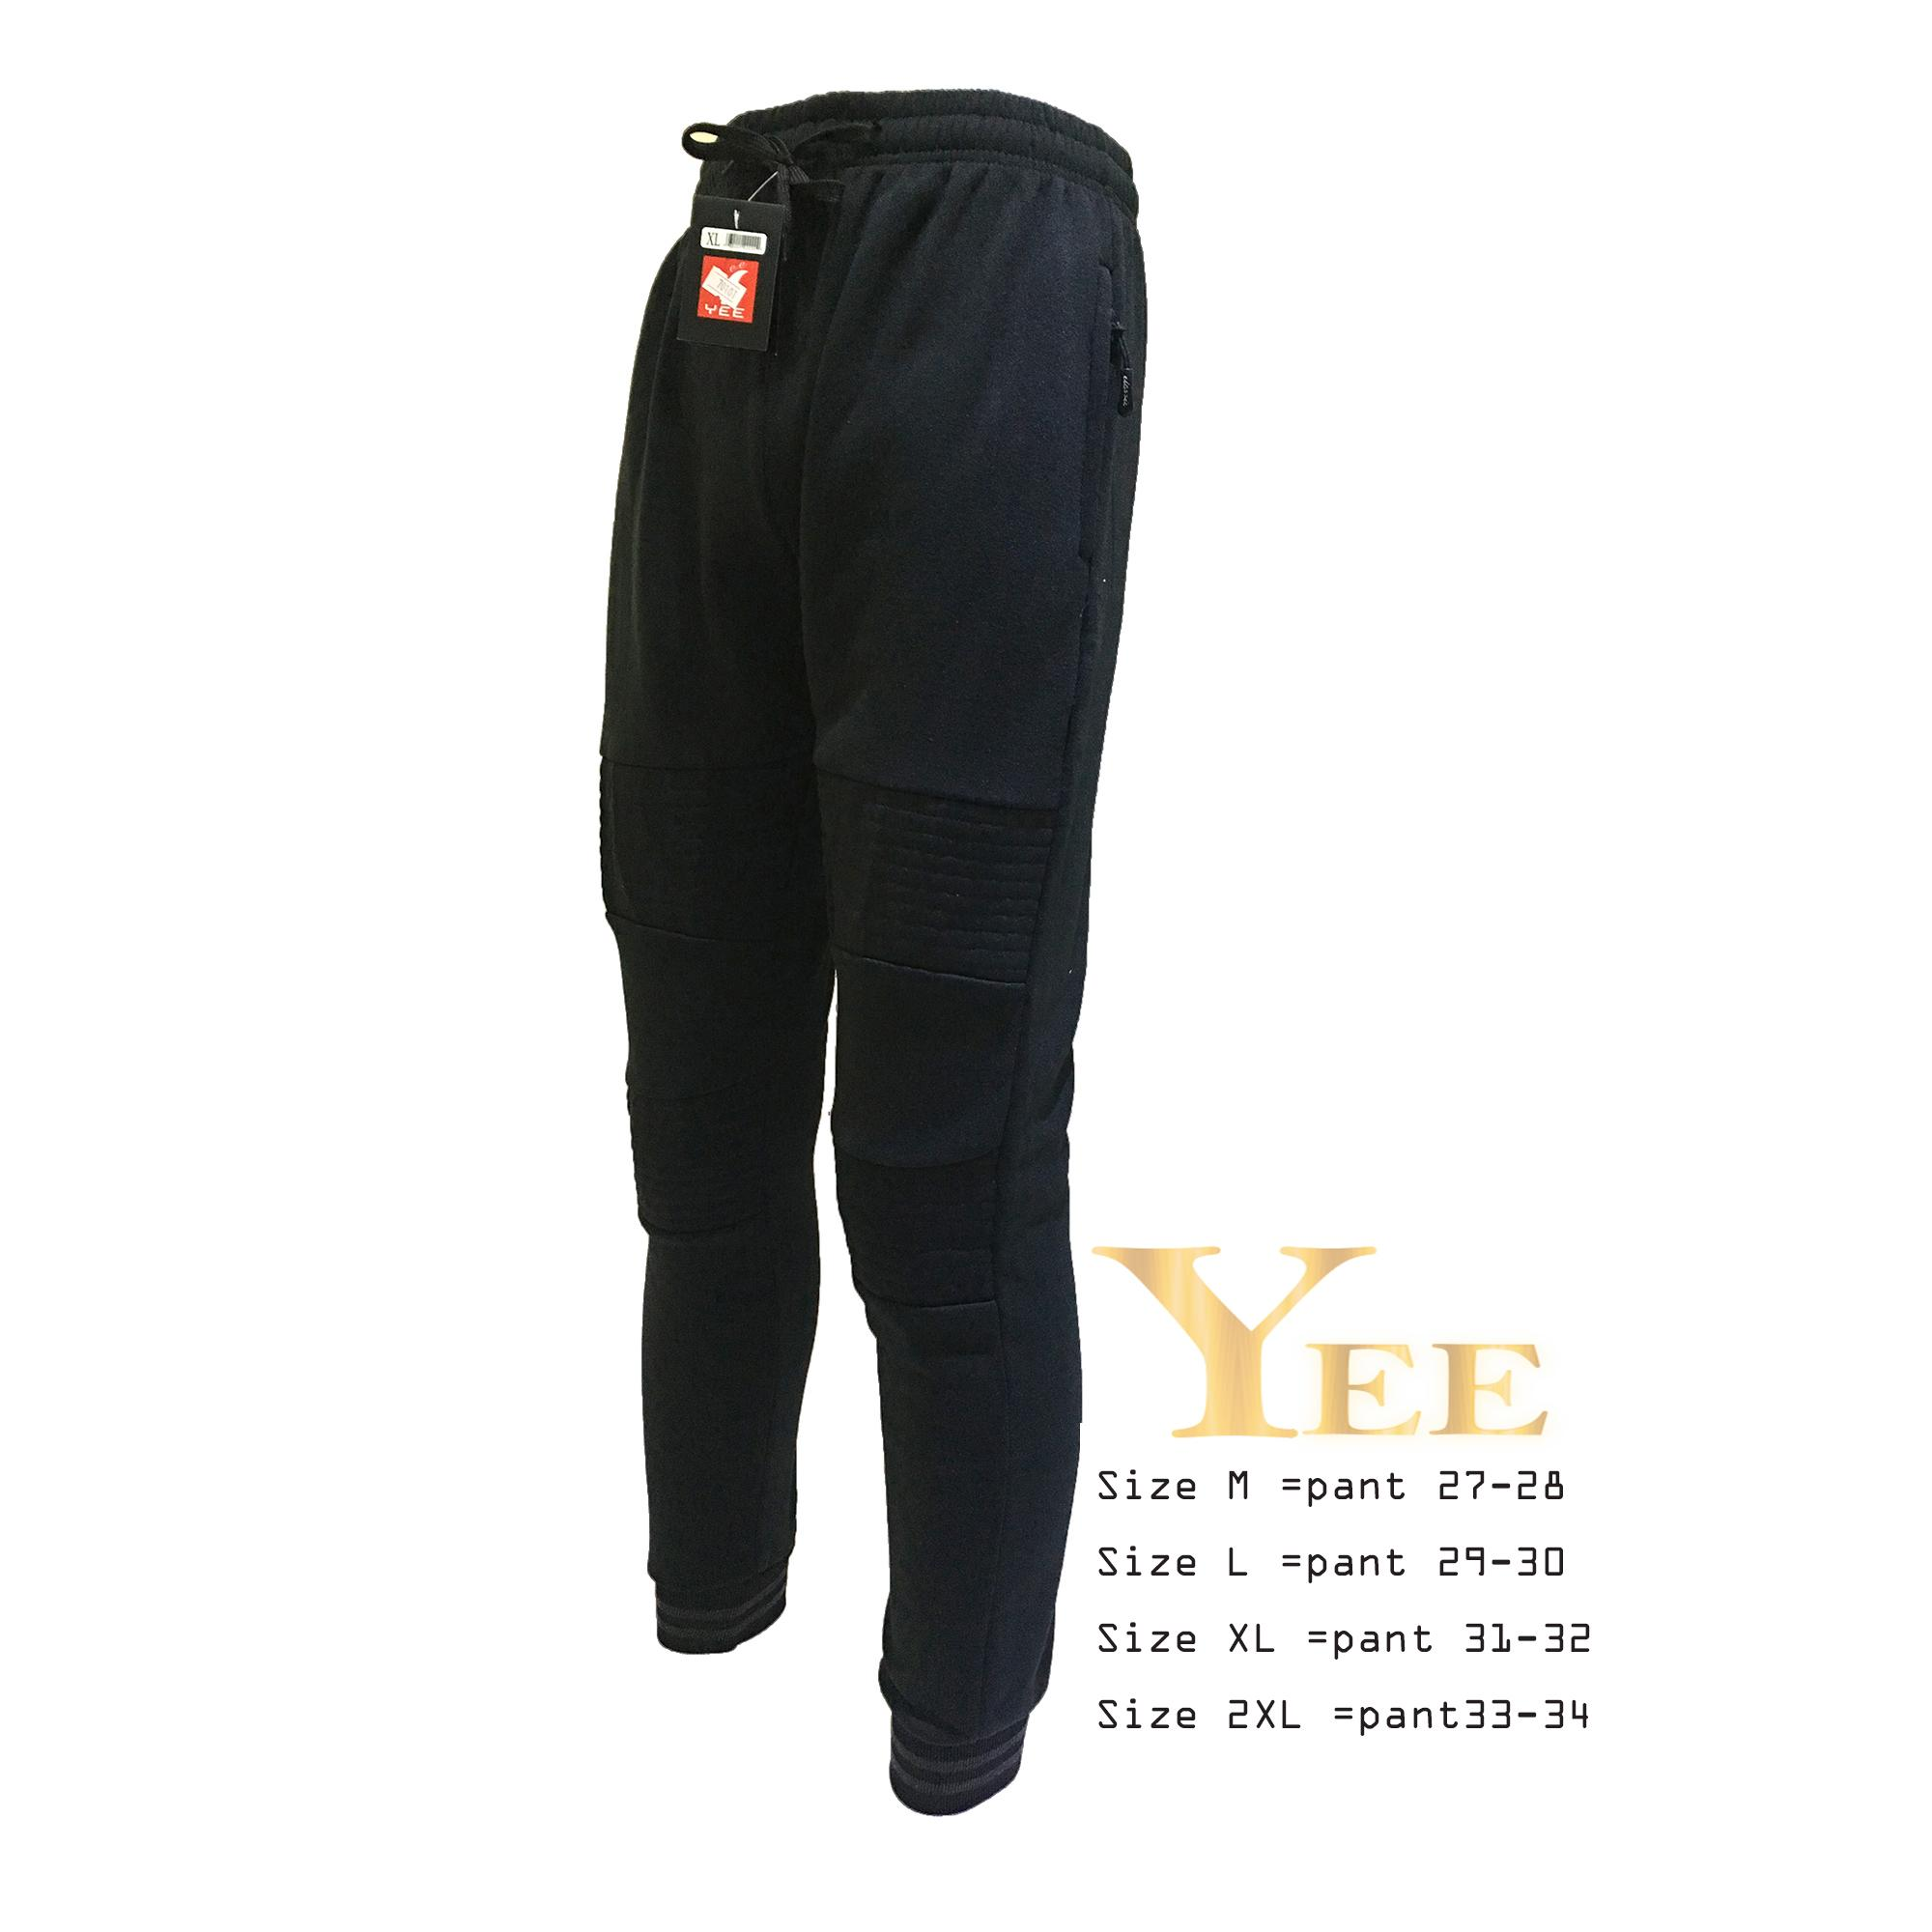 Sweatpants for Men for sale Joggers for Men online brands prices & reviews in Philippines